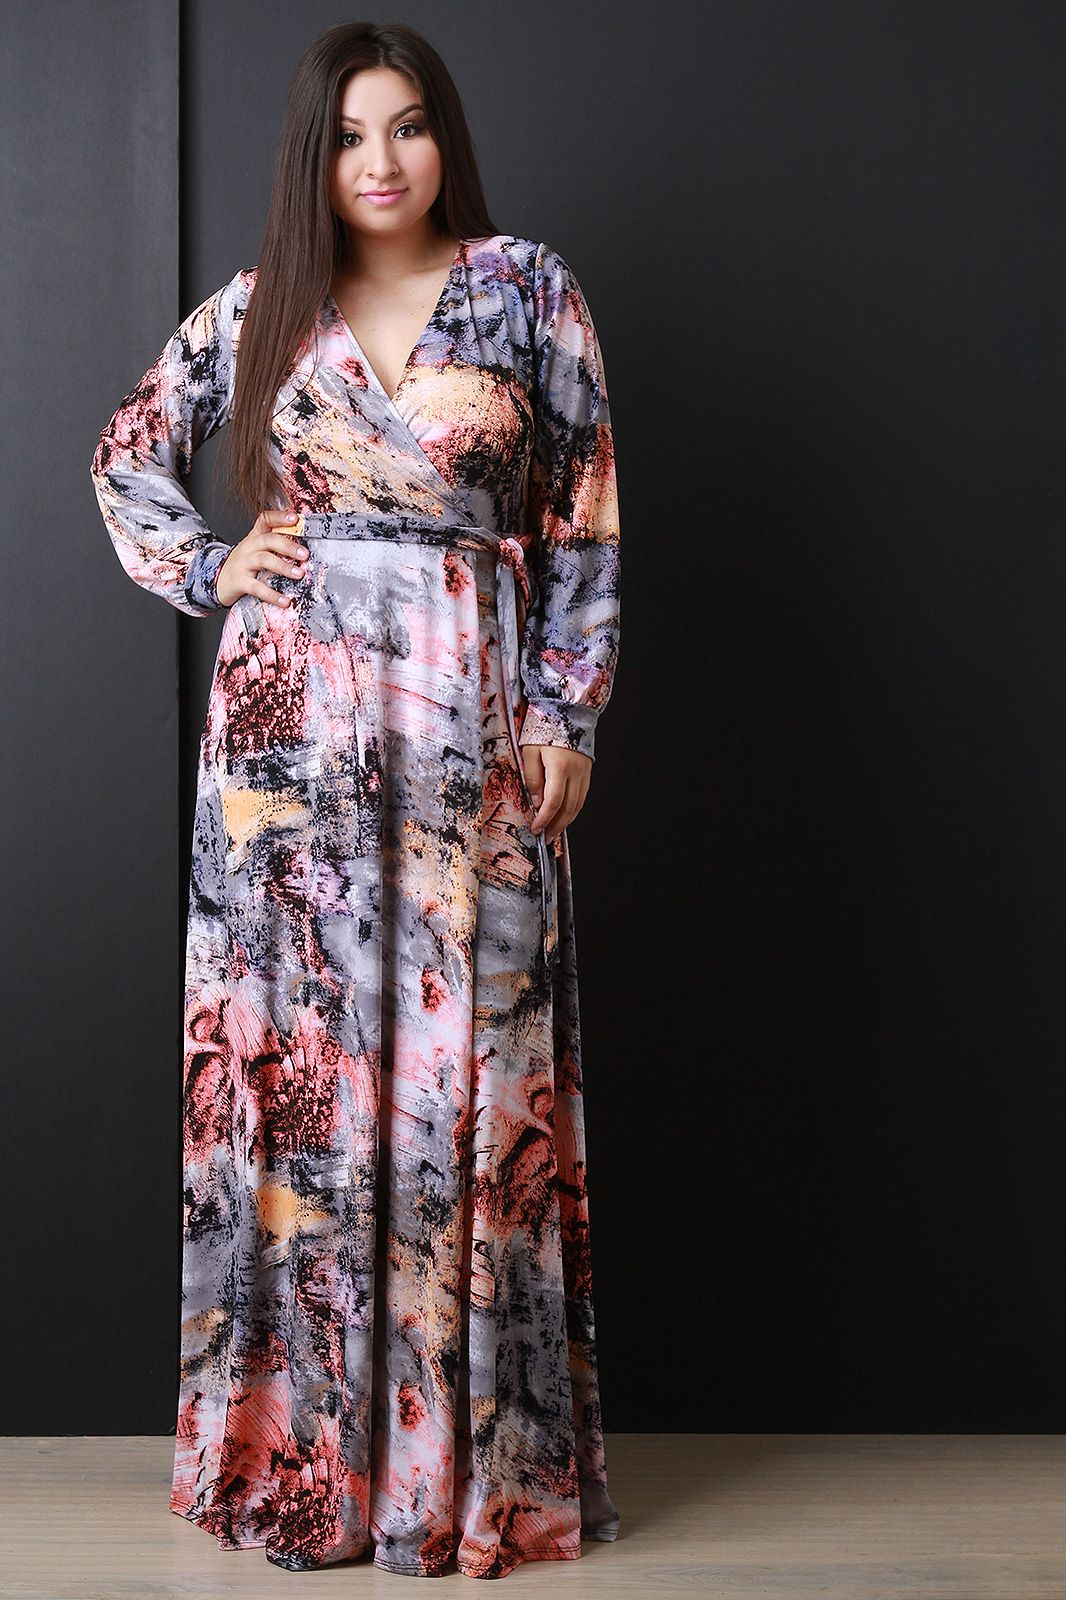 FREE SH & Easy Returns! Looking for Trendy Plus Size Clothing? We have 1X, 2X, 3X. Plus size dresses that fits every body type. Shop UrbanOG.com